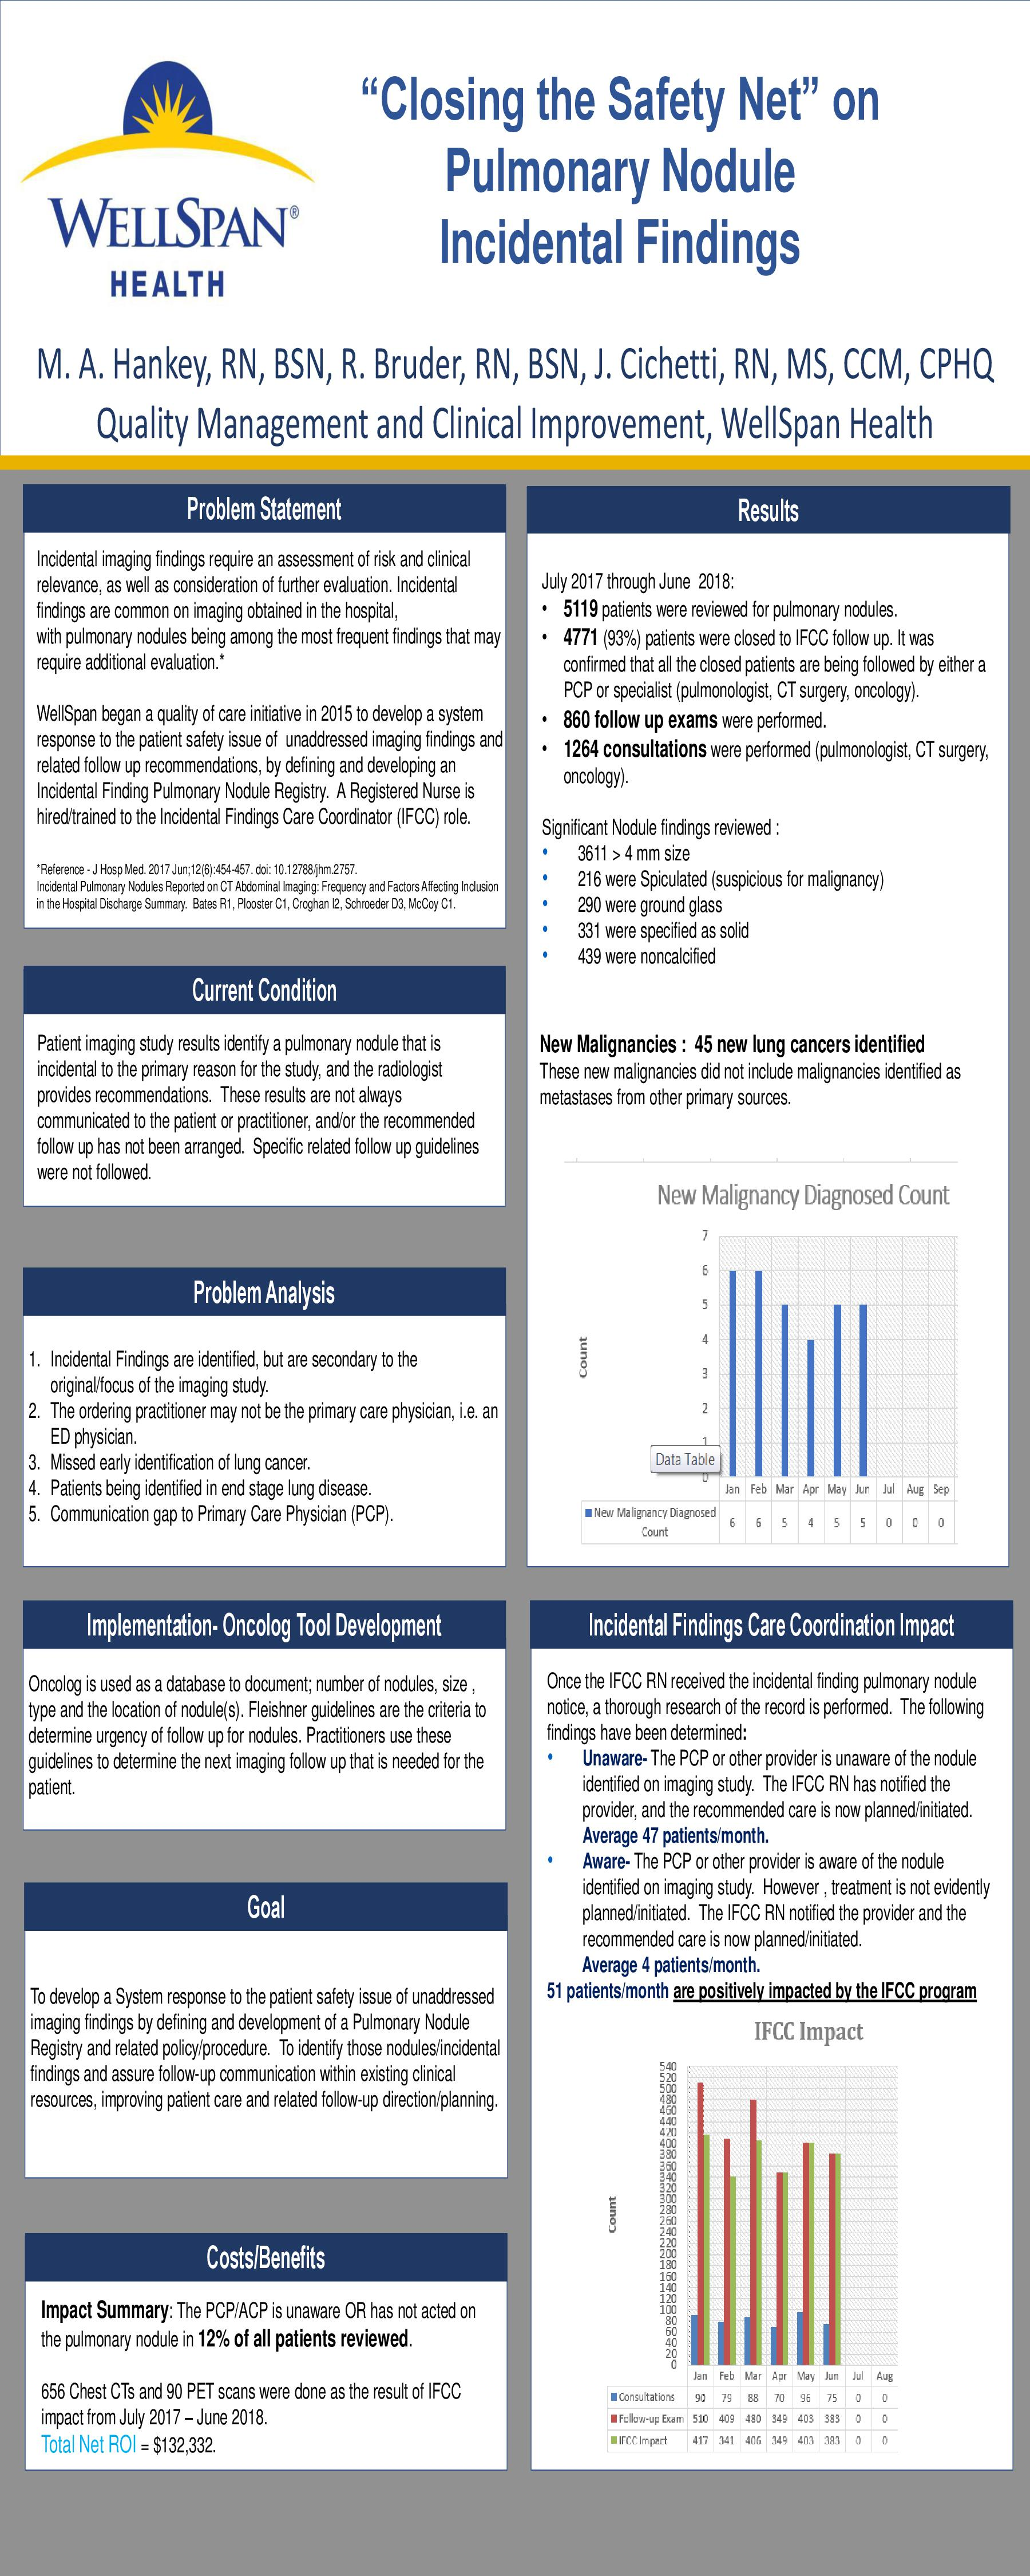 IHI Incidental Findings Poster 2018